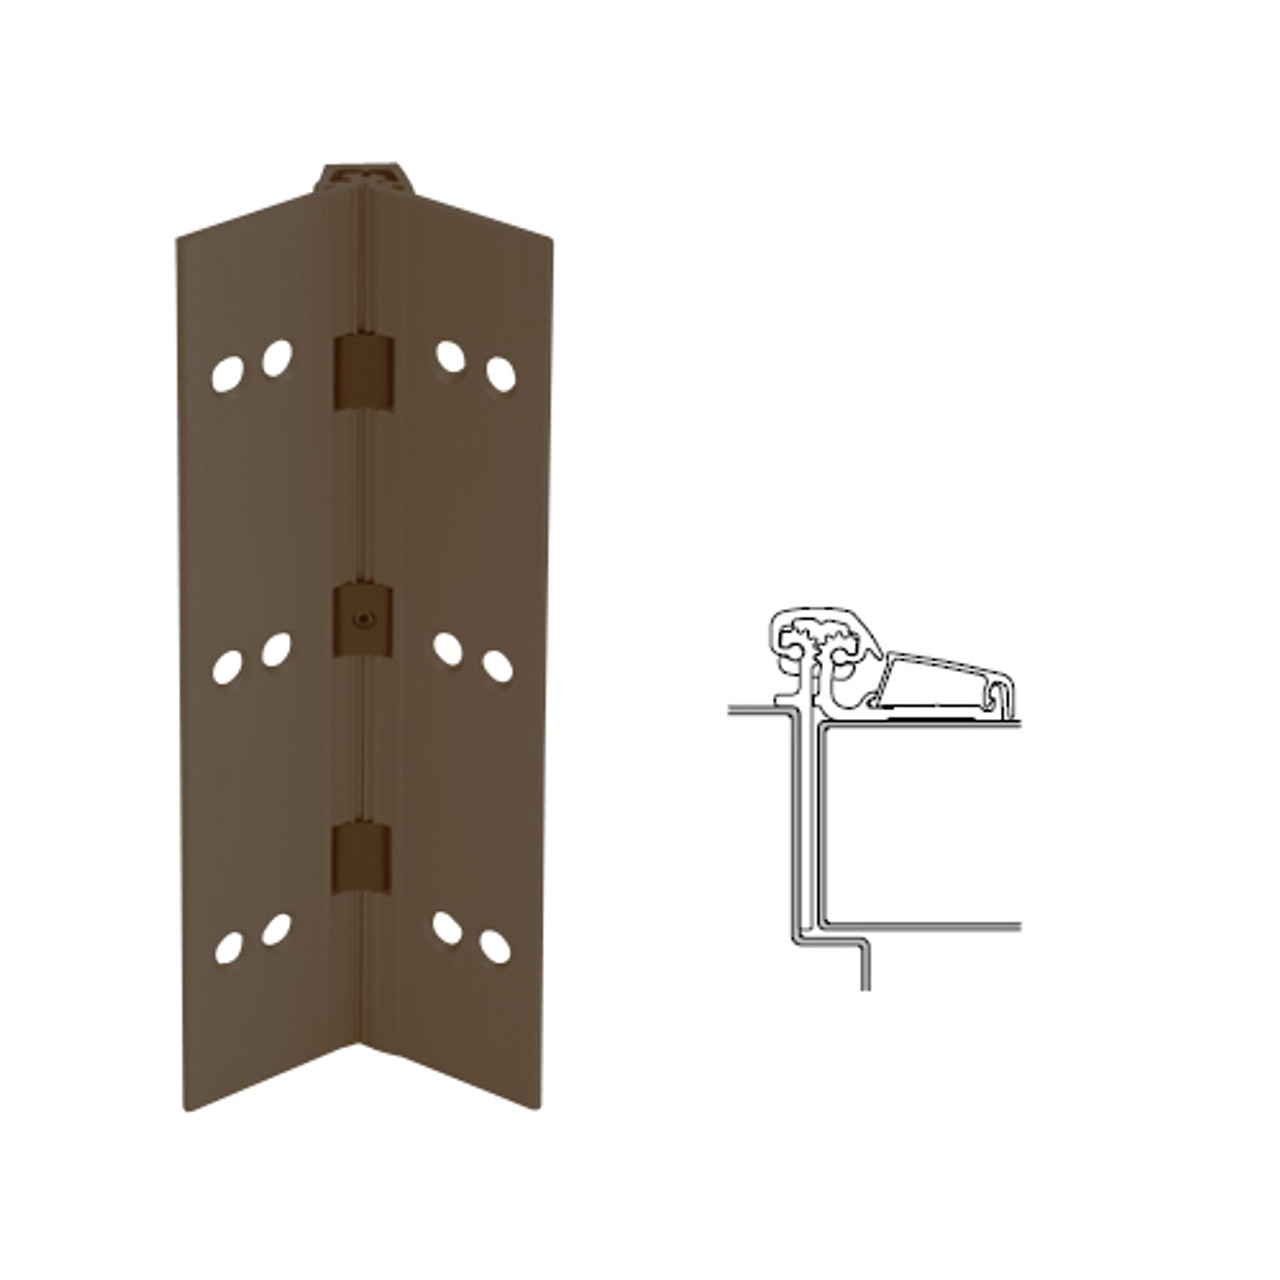 054XY-313AN-120-TEKWD IVES Adjustable Half Surface Continuous Geared Hinges with Wood Screws in Dark Bronze Anodized